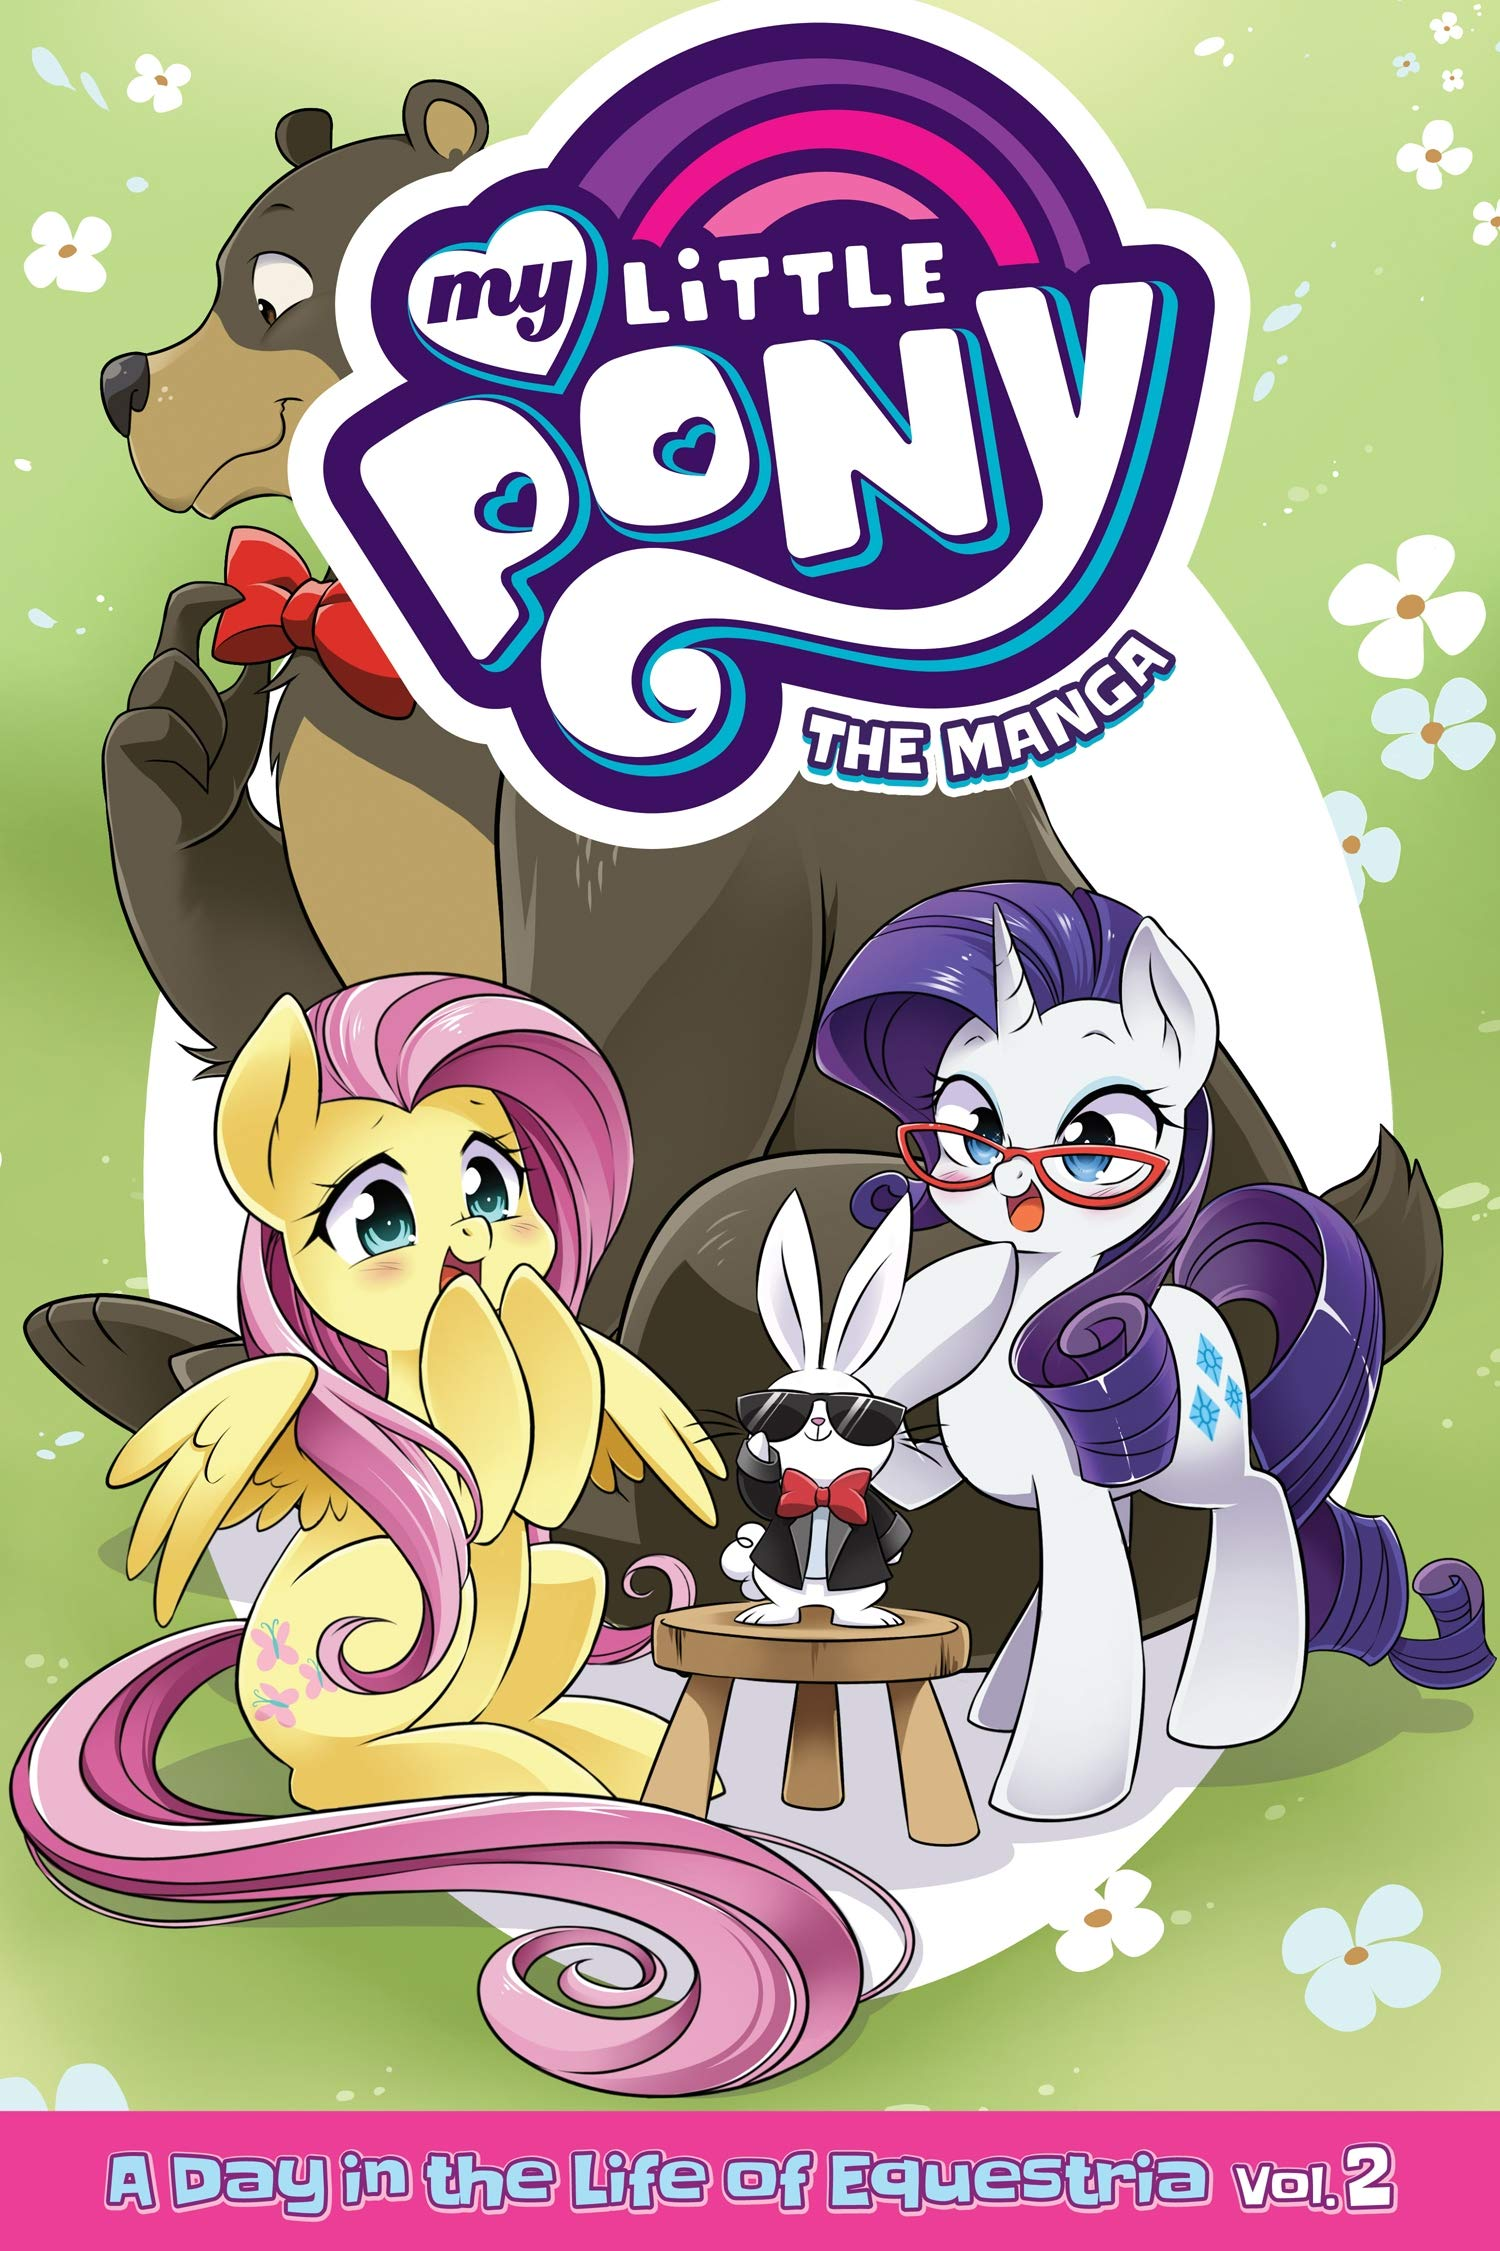 My Little Pony the Manga a Day in the Life of Equestria 2